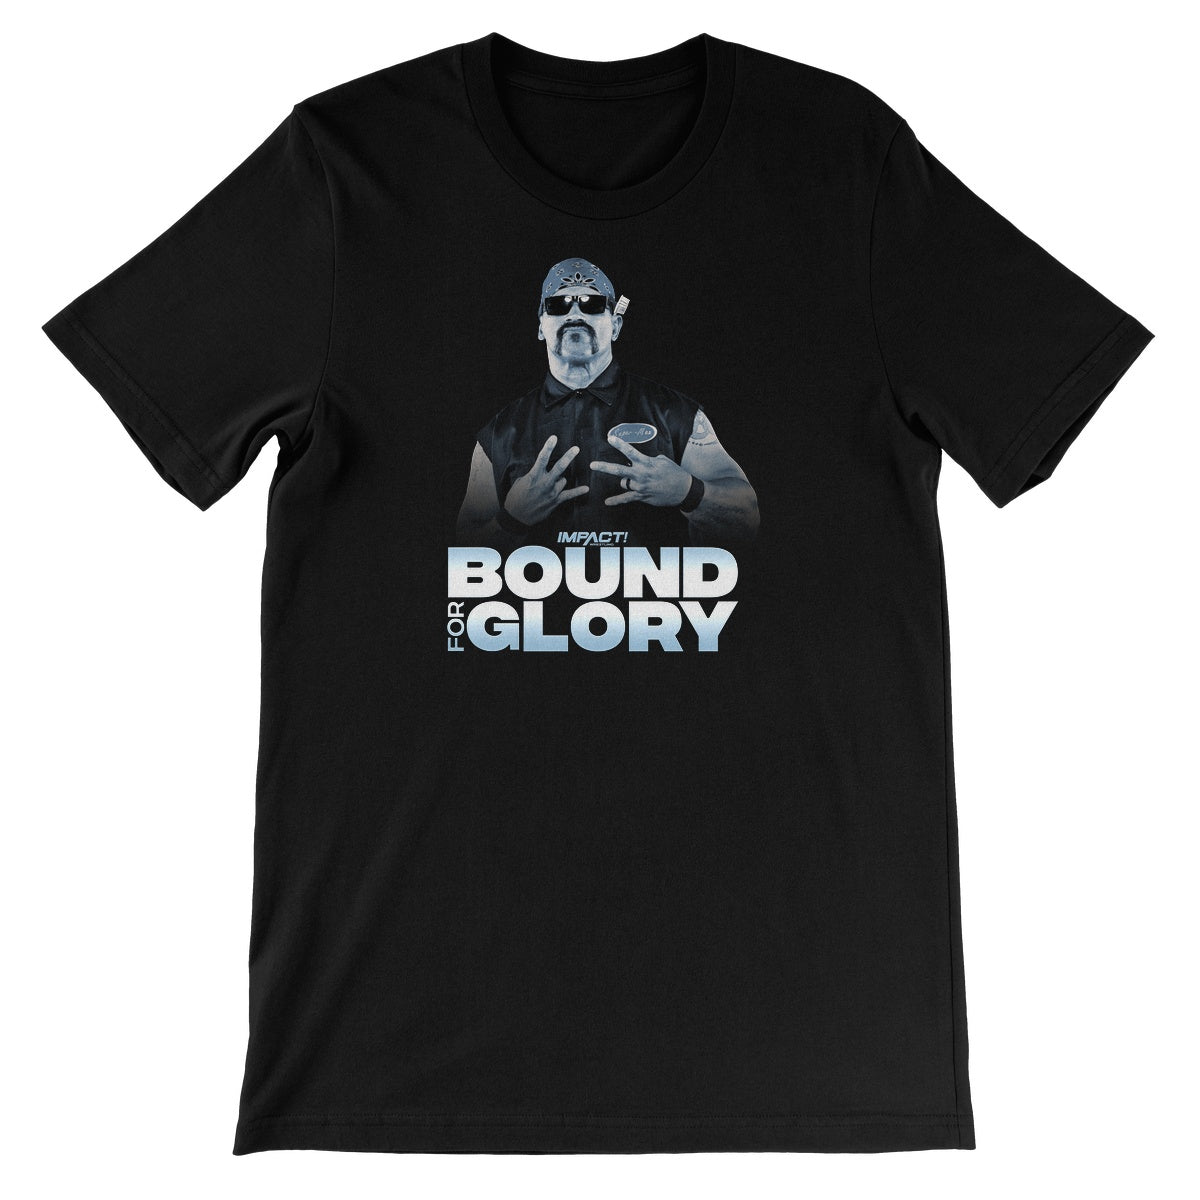 Bound For Glory 2020 - Hernandez Unisex Short Sleeve T-Shirt